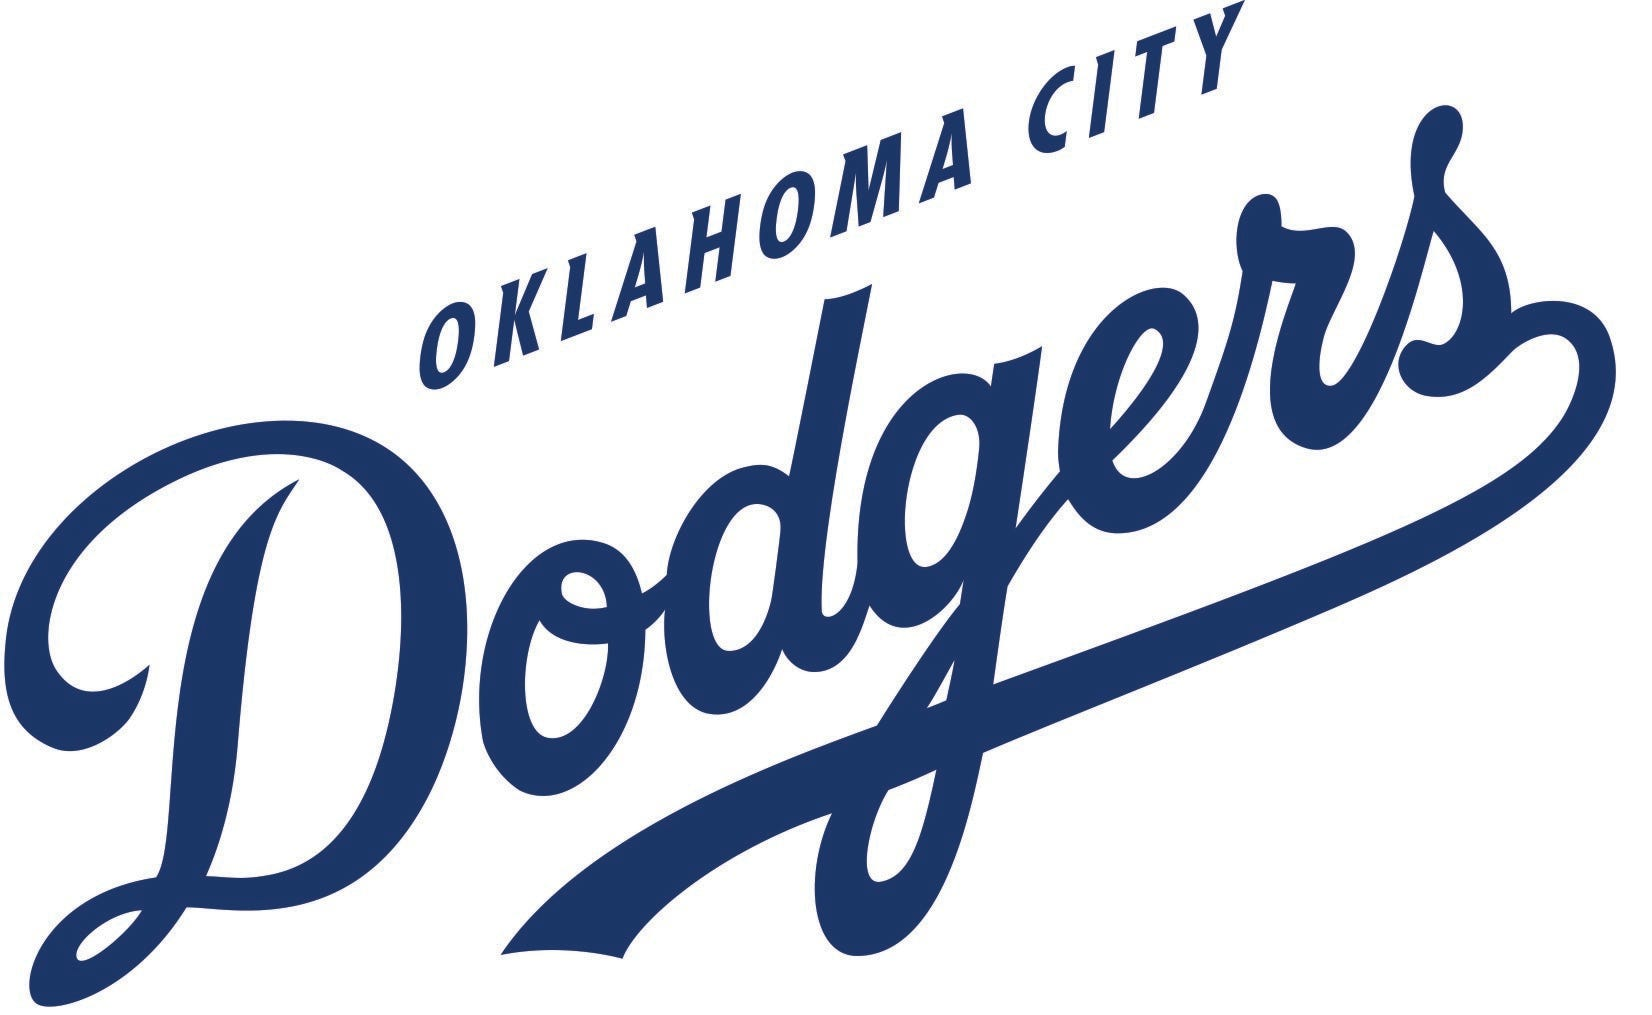 Sounds Pitching Stops Dodgers Saturday